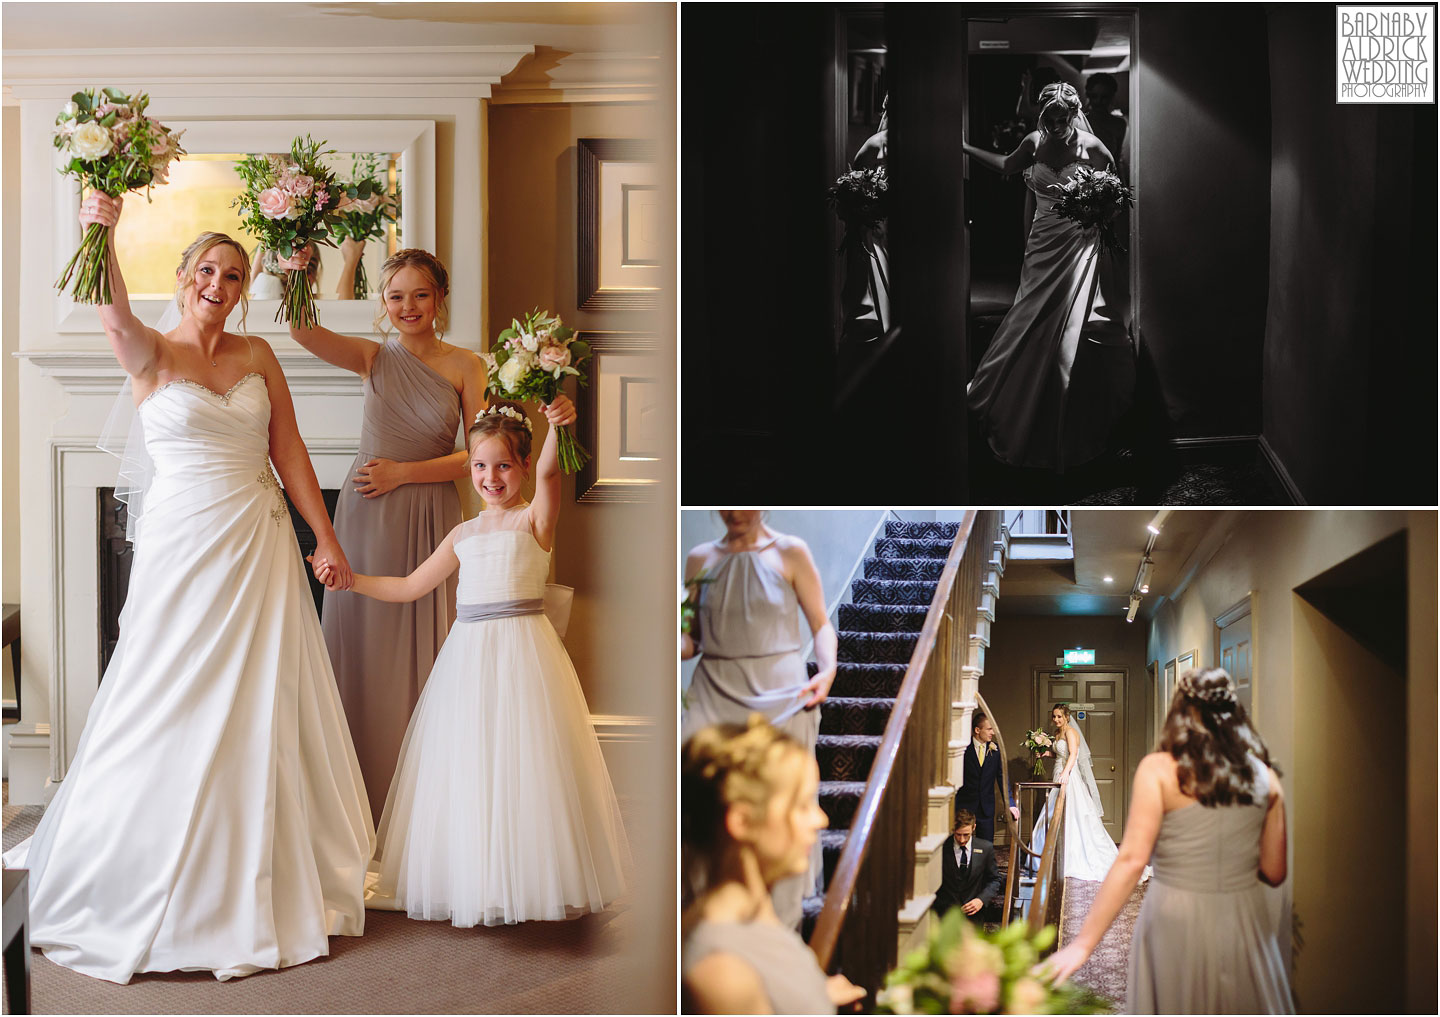 Wood Hall Hotel Wetherby preparation photography, Wood Hall Wedding Photos, Wood Hall Wedding Photographer